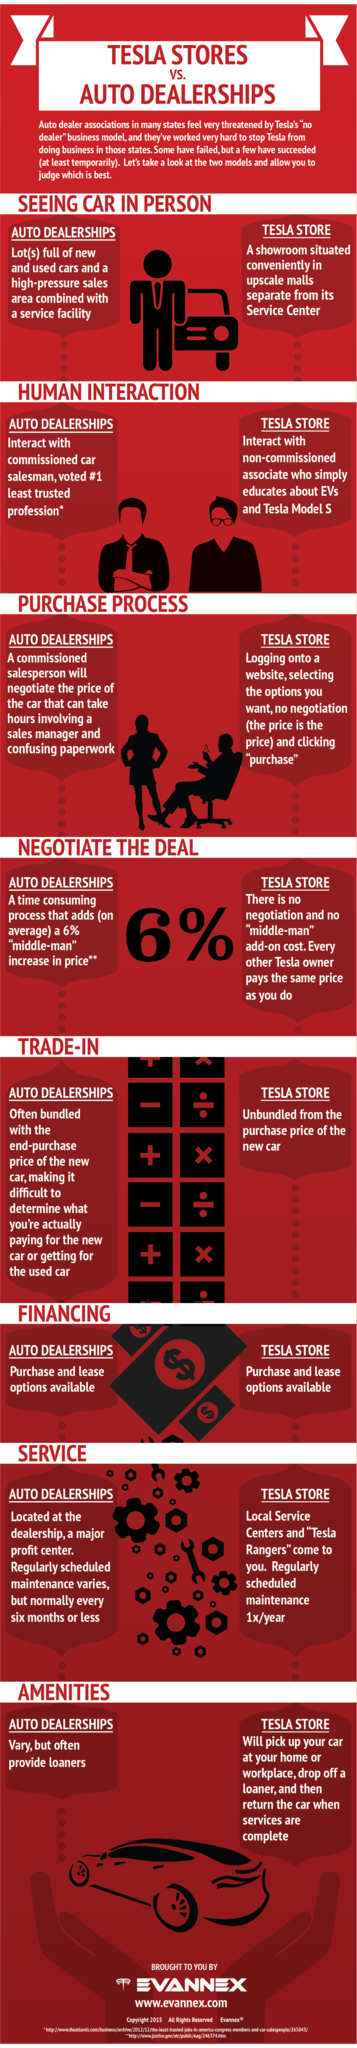 recent news, Tesla Motors has finally won the right the sell it's cars in New Jersey. And, Connecticut is inching closer to direct sales as well. Nevertheles